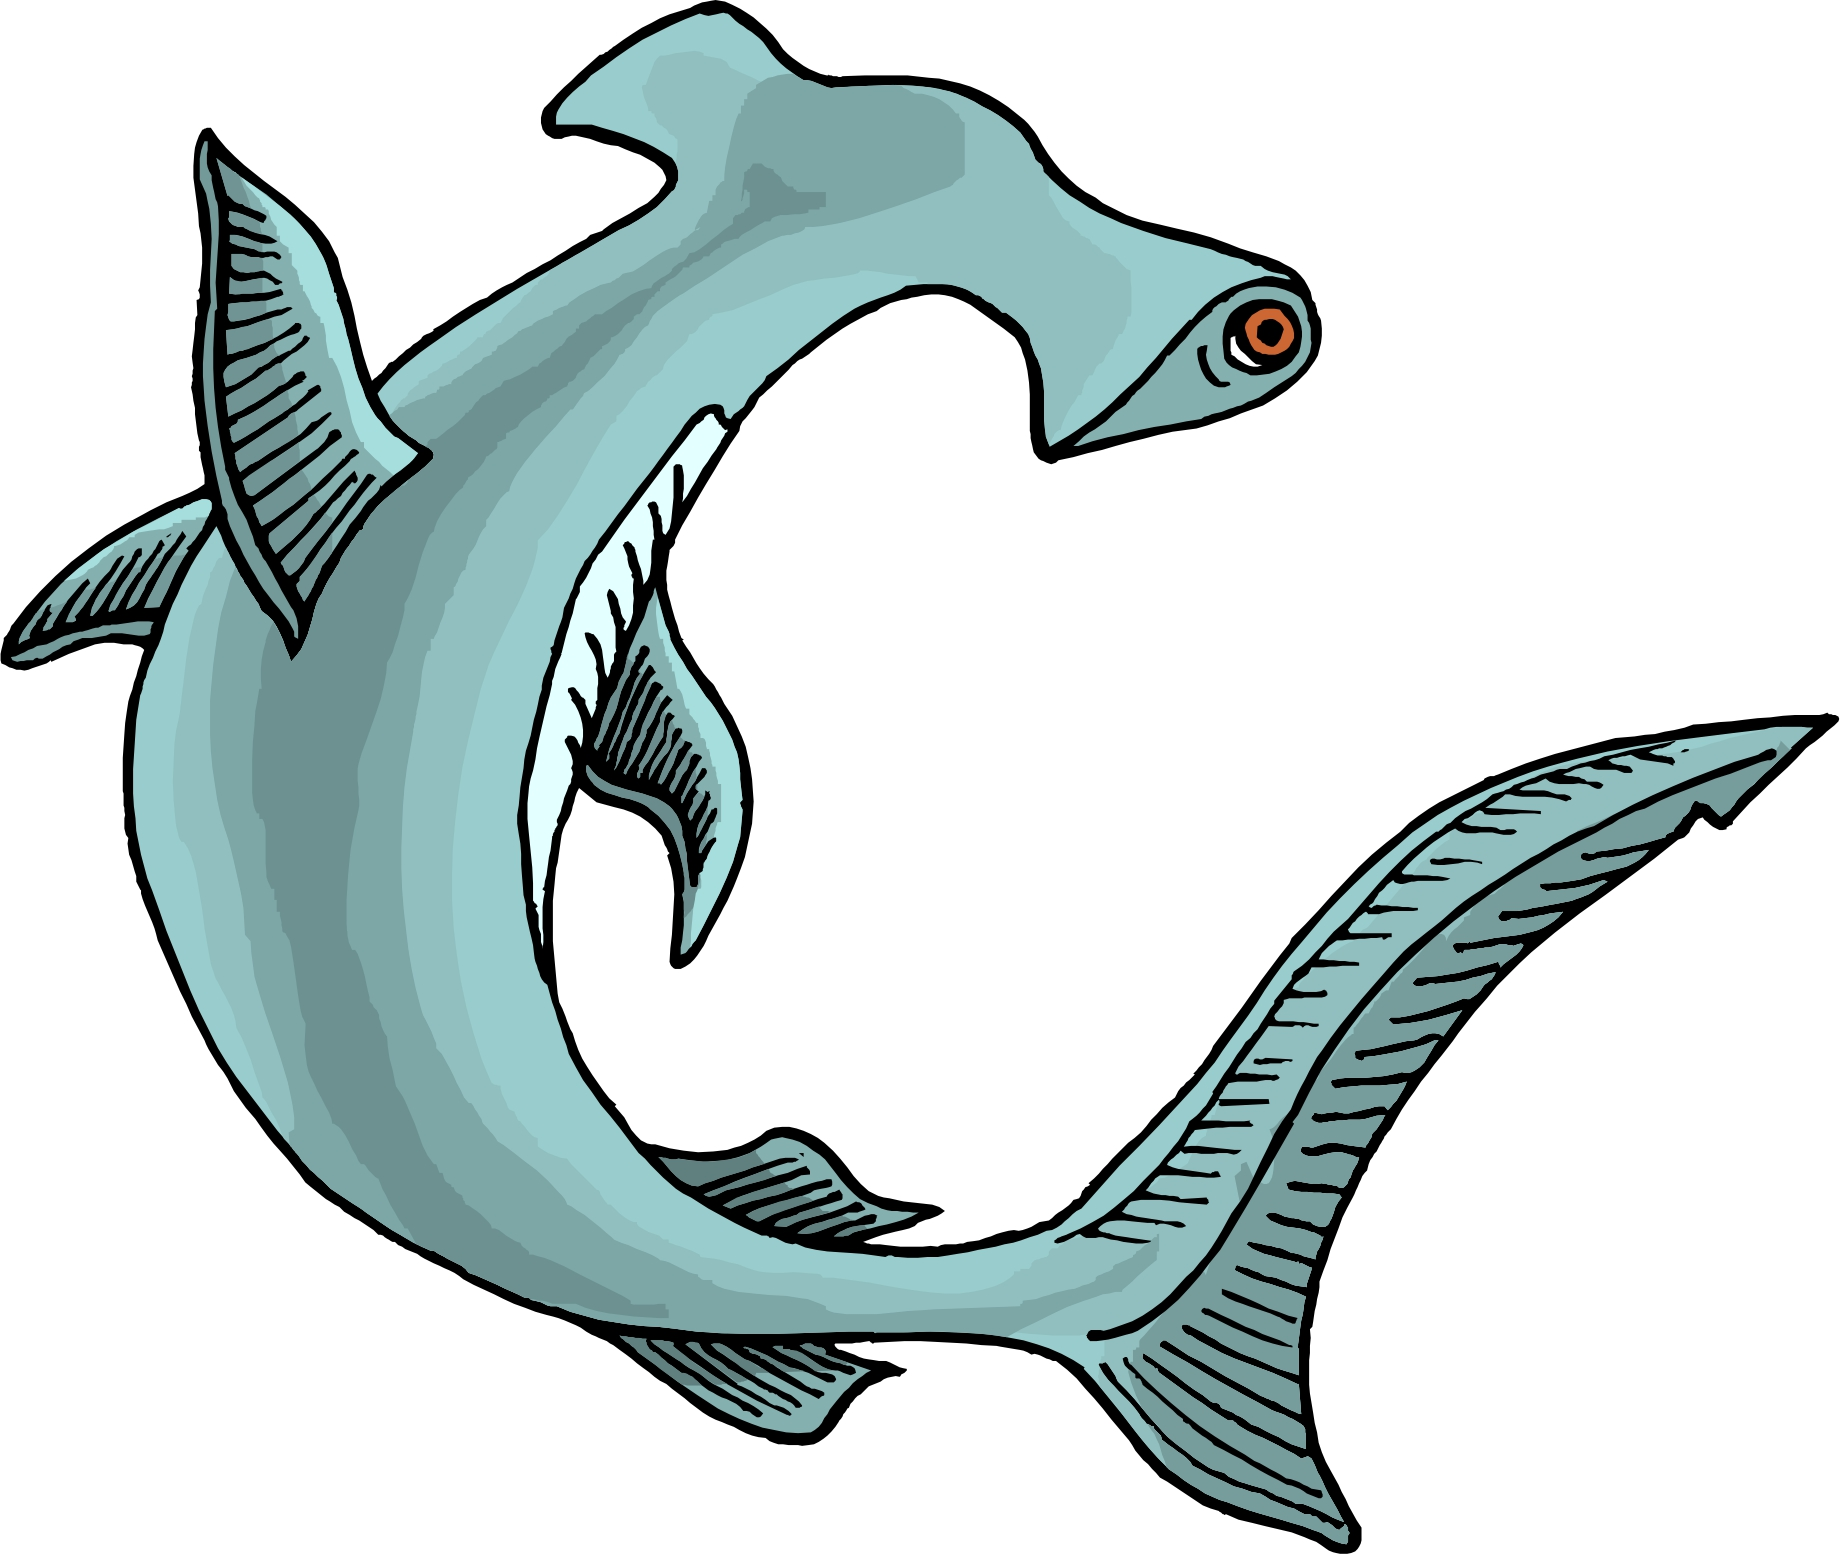 Whale Shark Clipart At Getdrawings Com Free For Personal Use Whale